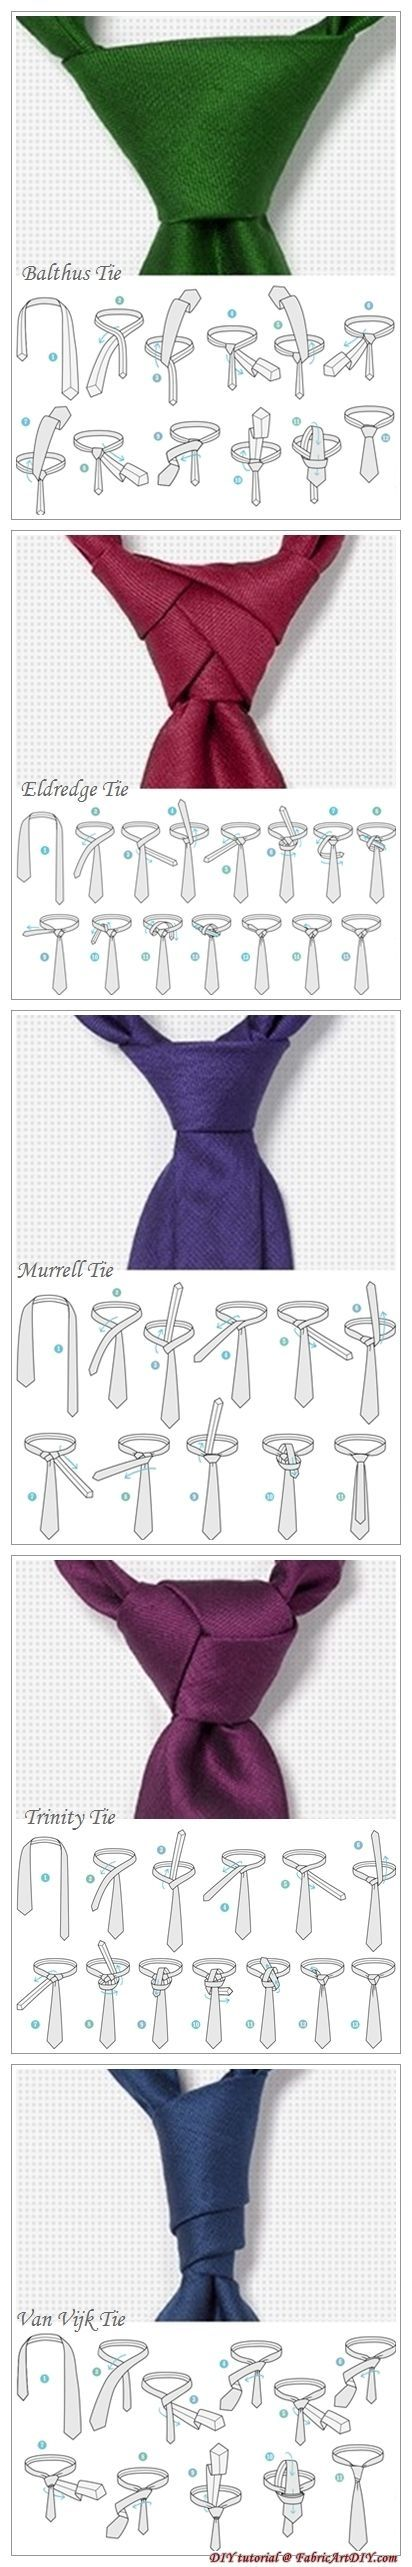 Adventurous tie knot instruction by noreen                                                                                                                                                                                 More